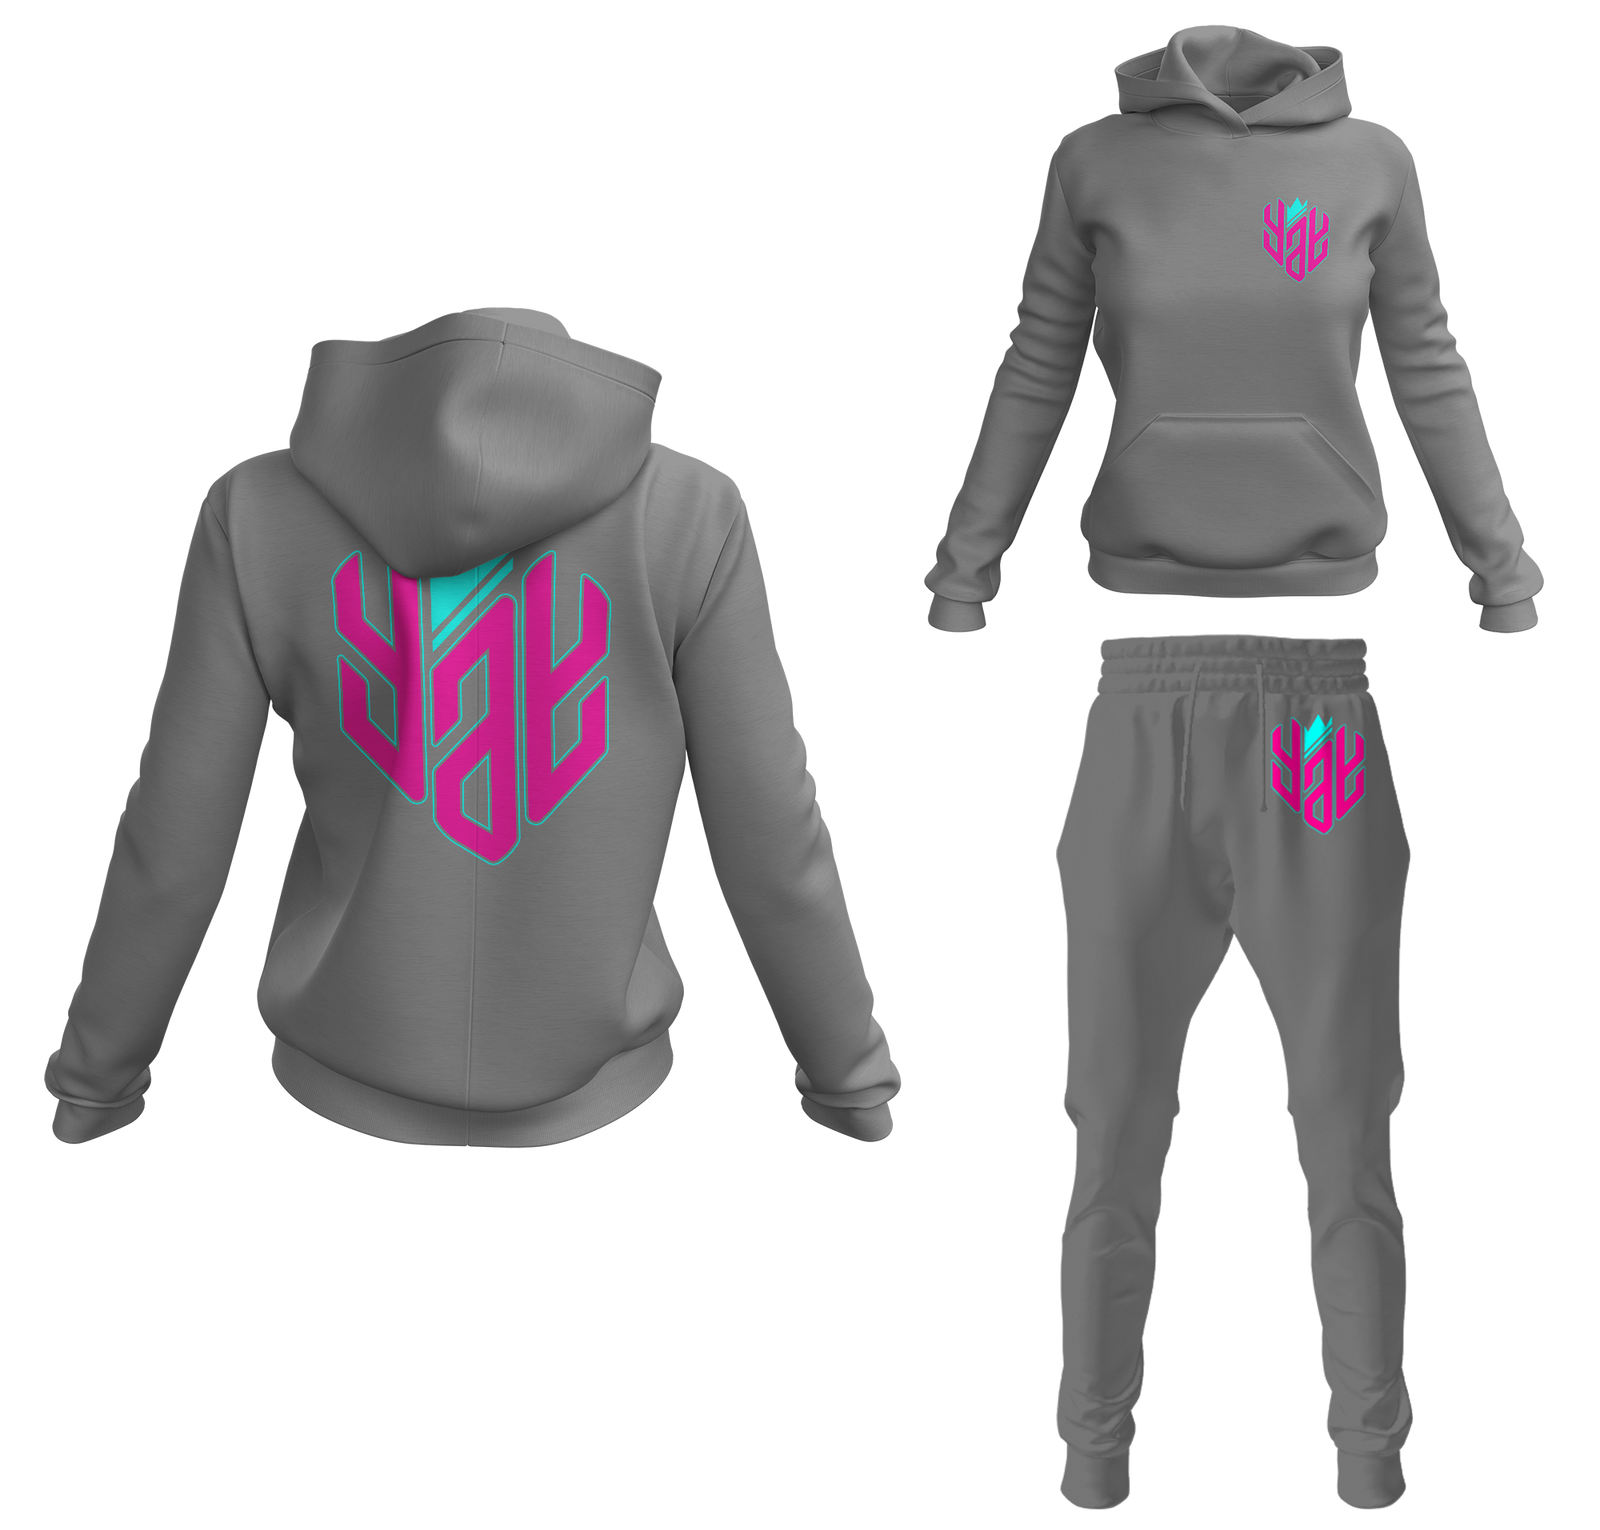 Women's New Yay Pullover Sweatsuits